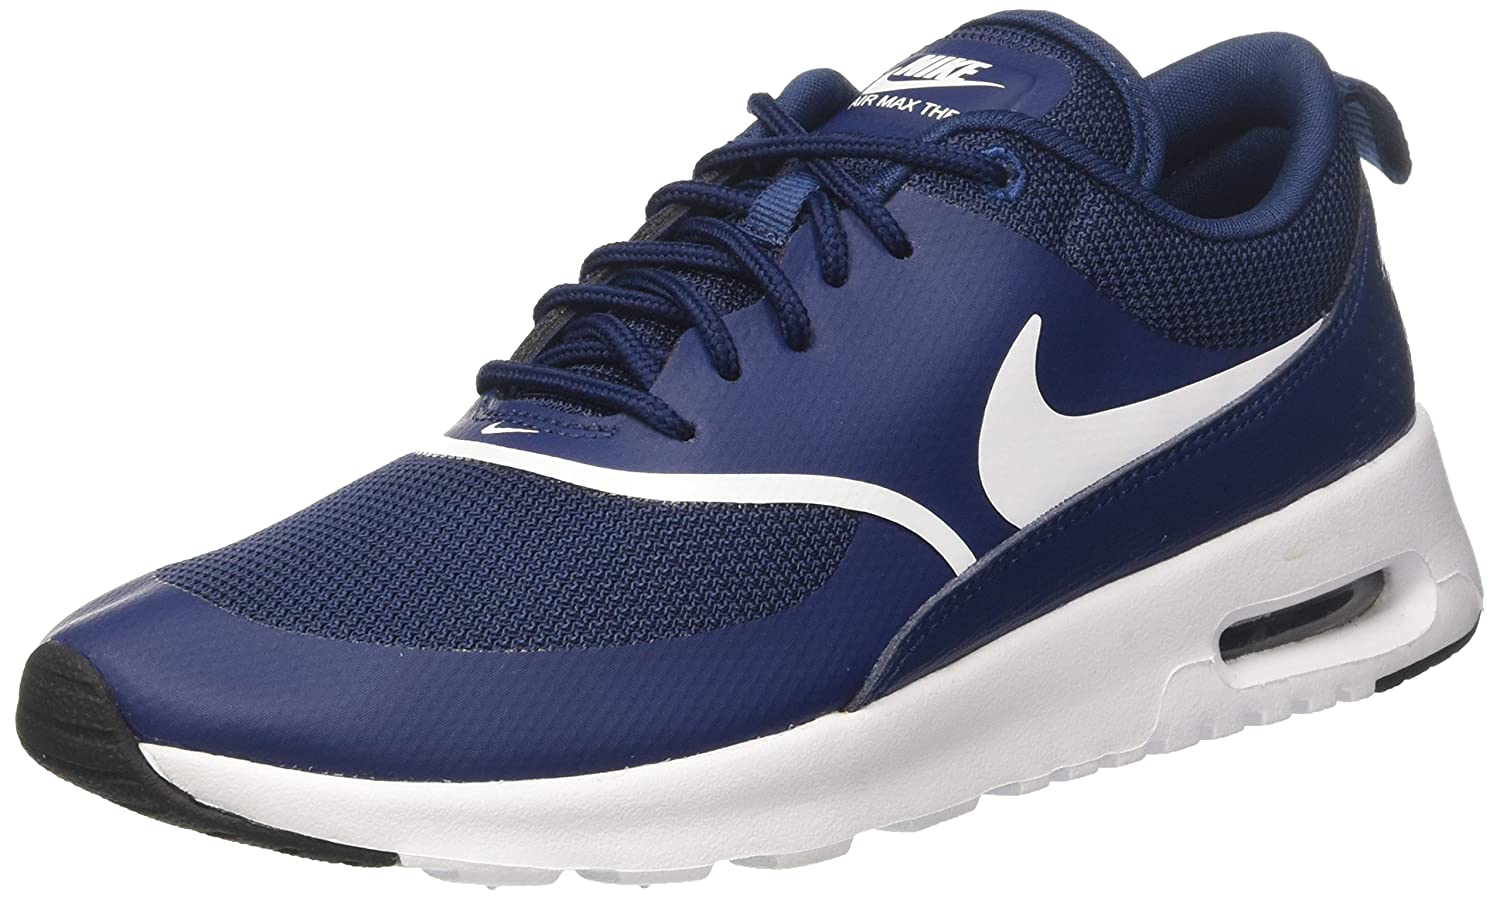 bluee (Navy White Black 419) Nike Women's Air Max Thea Low-Top Sneakers, Black